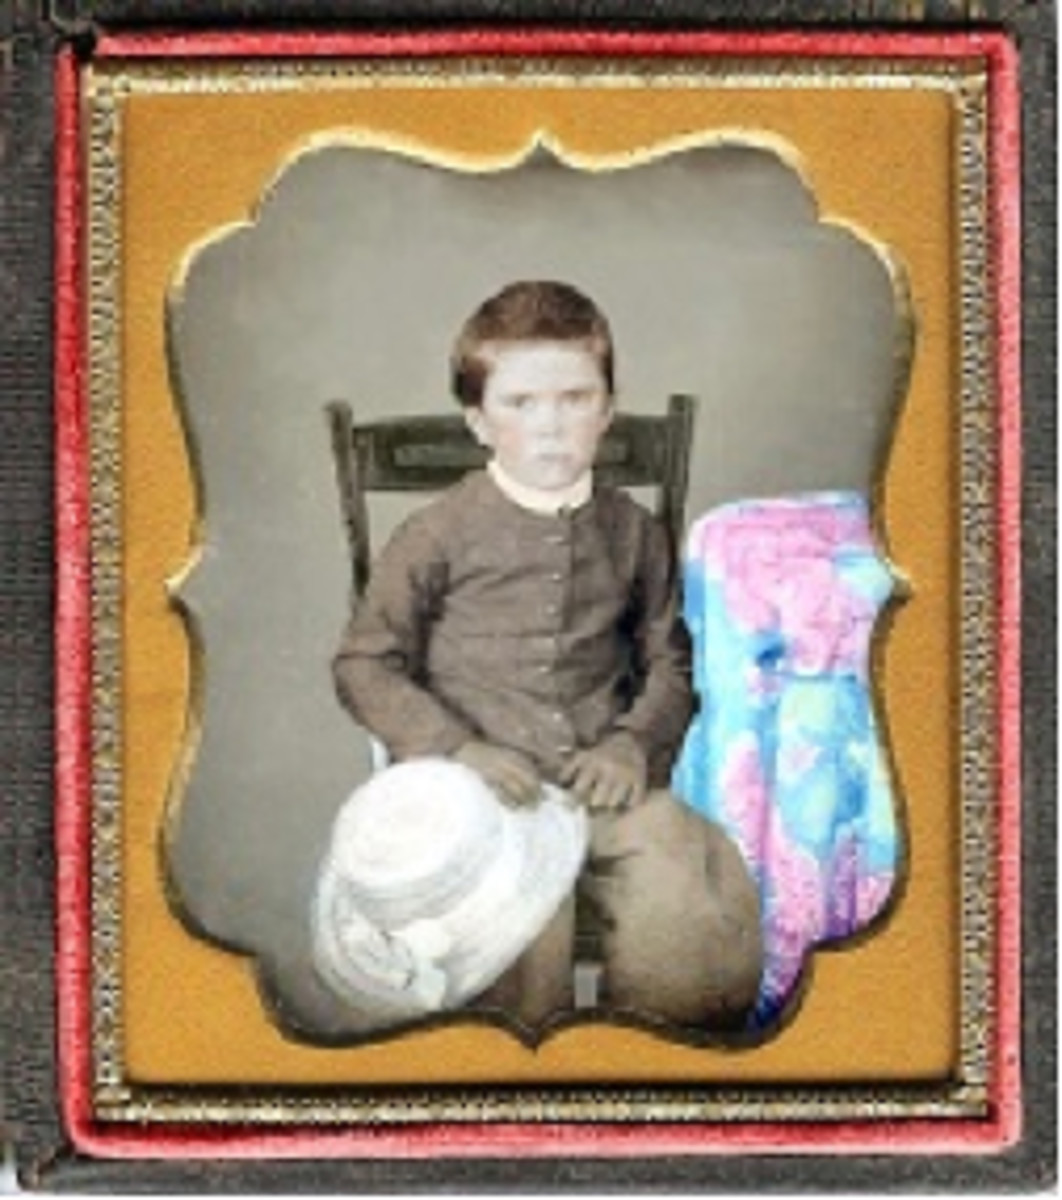 Daguerreotype of boy with color applied